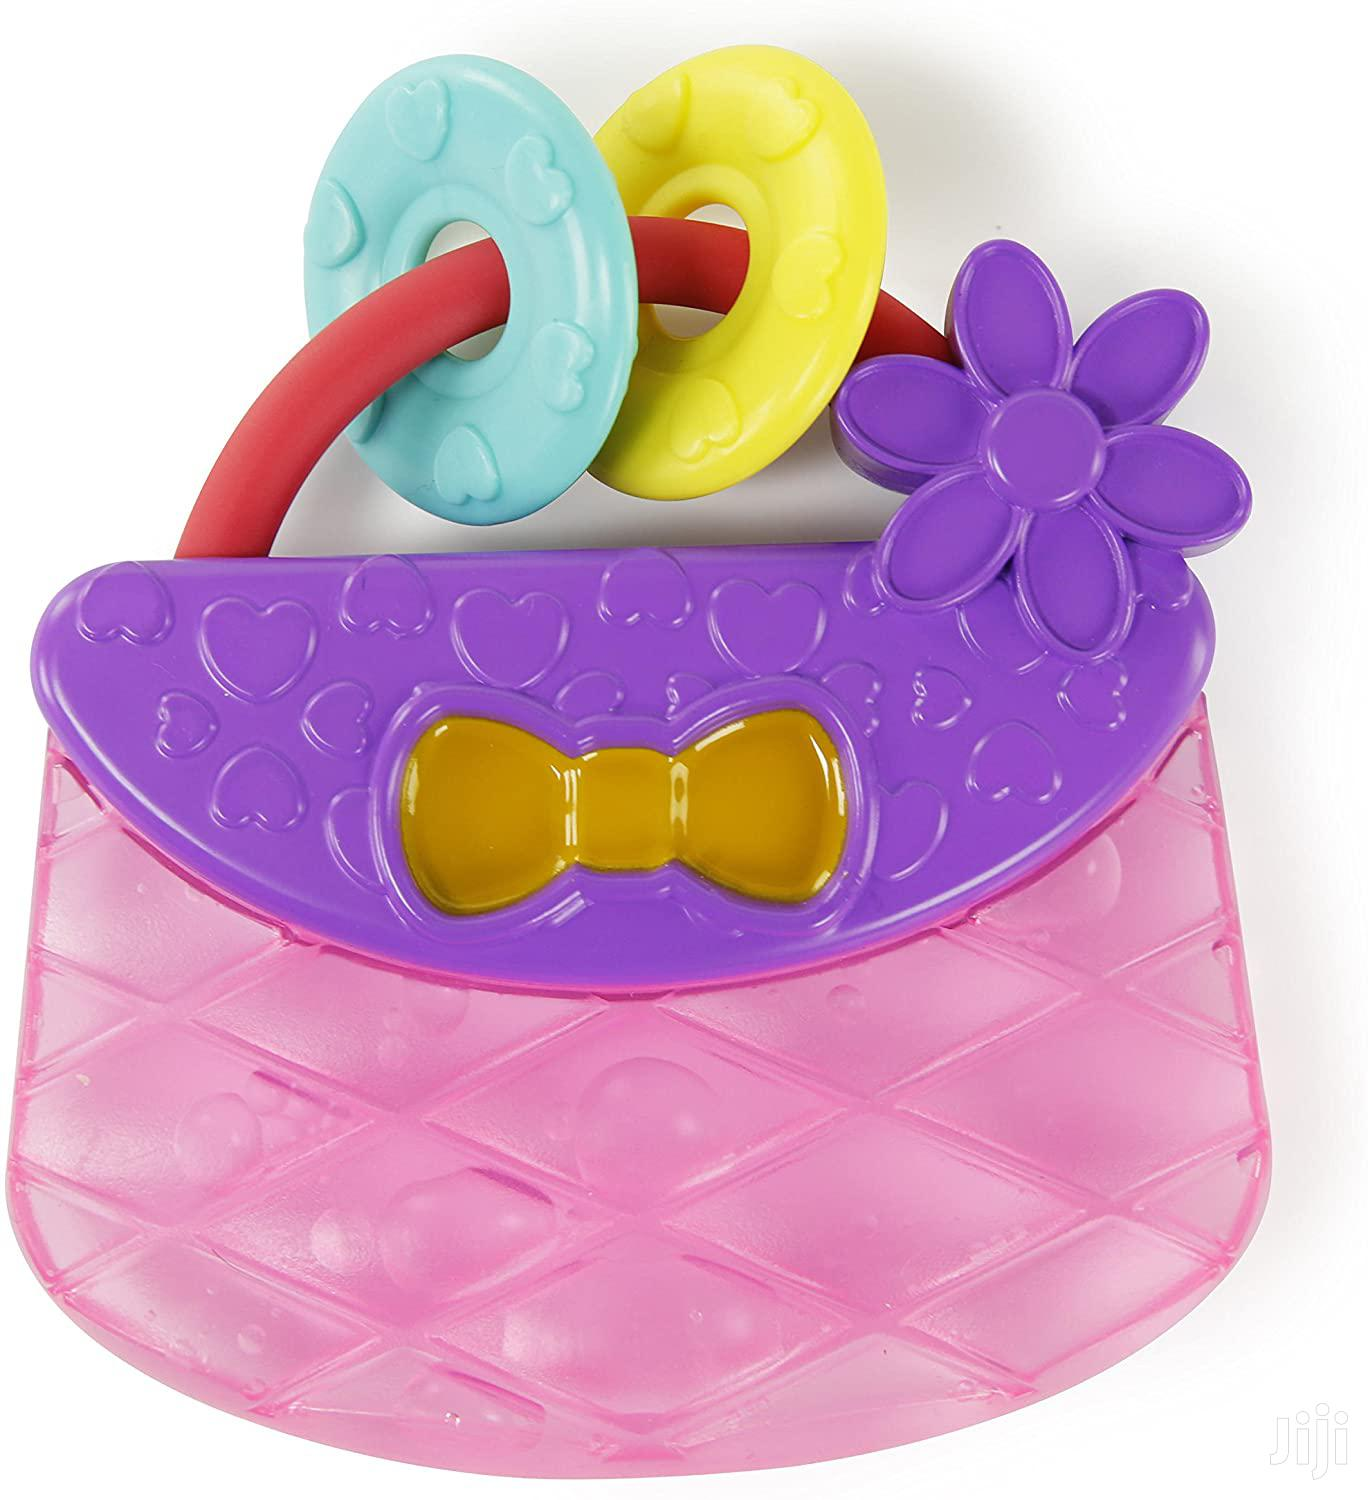 Baby Teether | Baby & Child Care for sale in East Legon, Greater Accra, Ghana